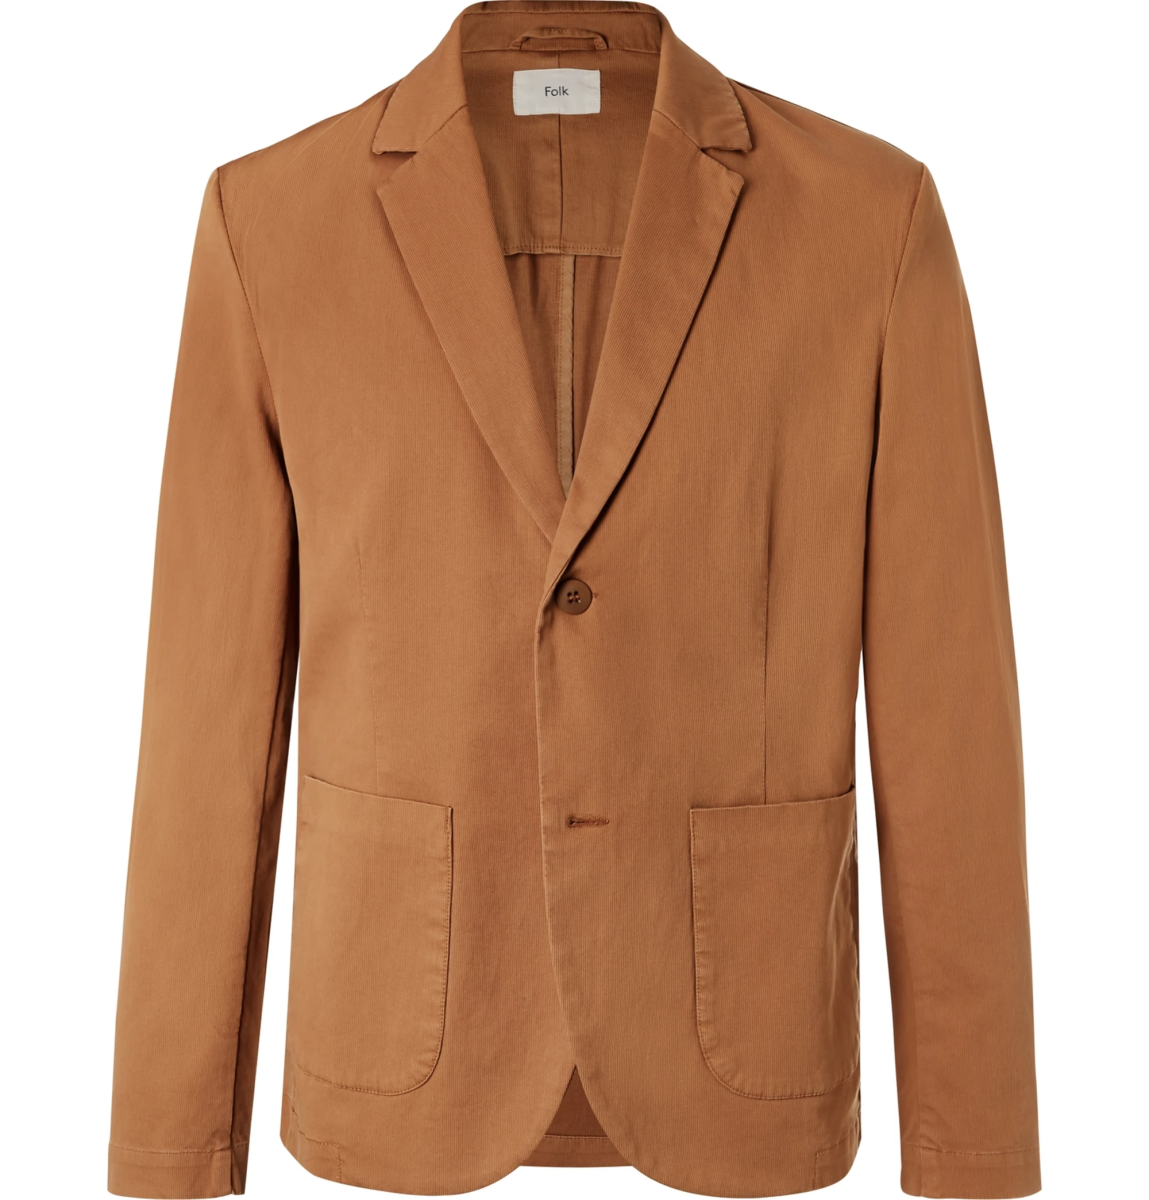 Folk Stretch Cotton Blazer ($231, orig. $330)